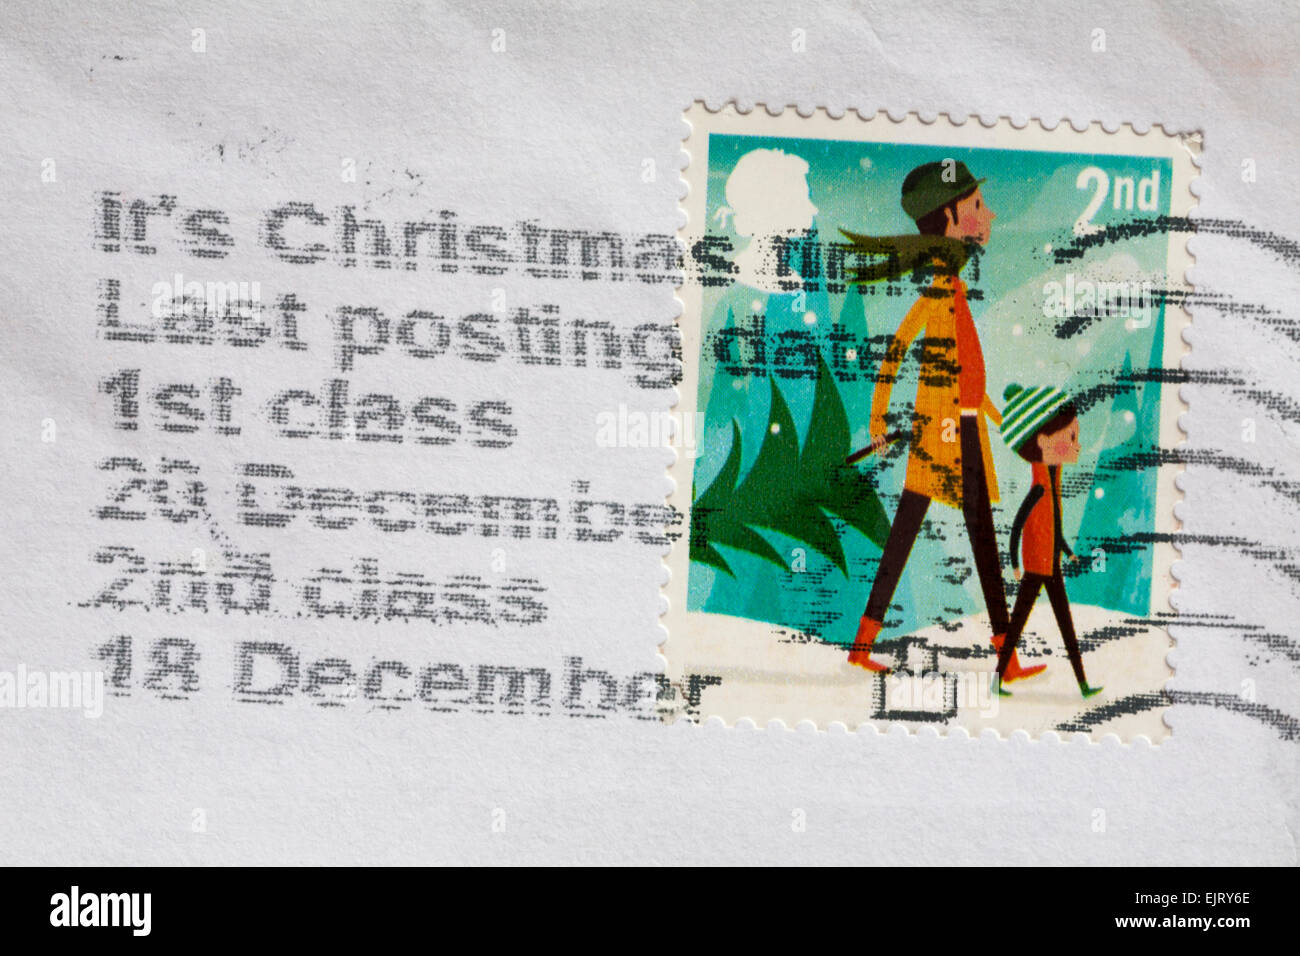 2nd class Christmas stamp on envelope with details of last posting dates for Christmas - Stock Image